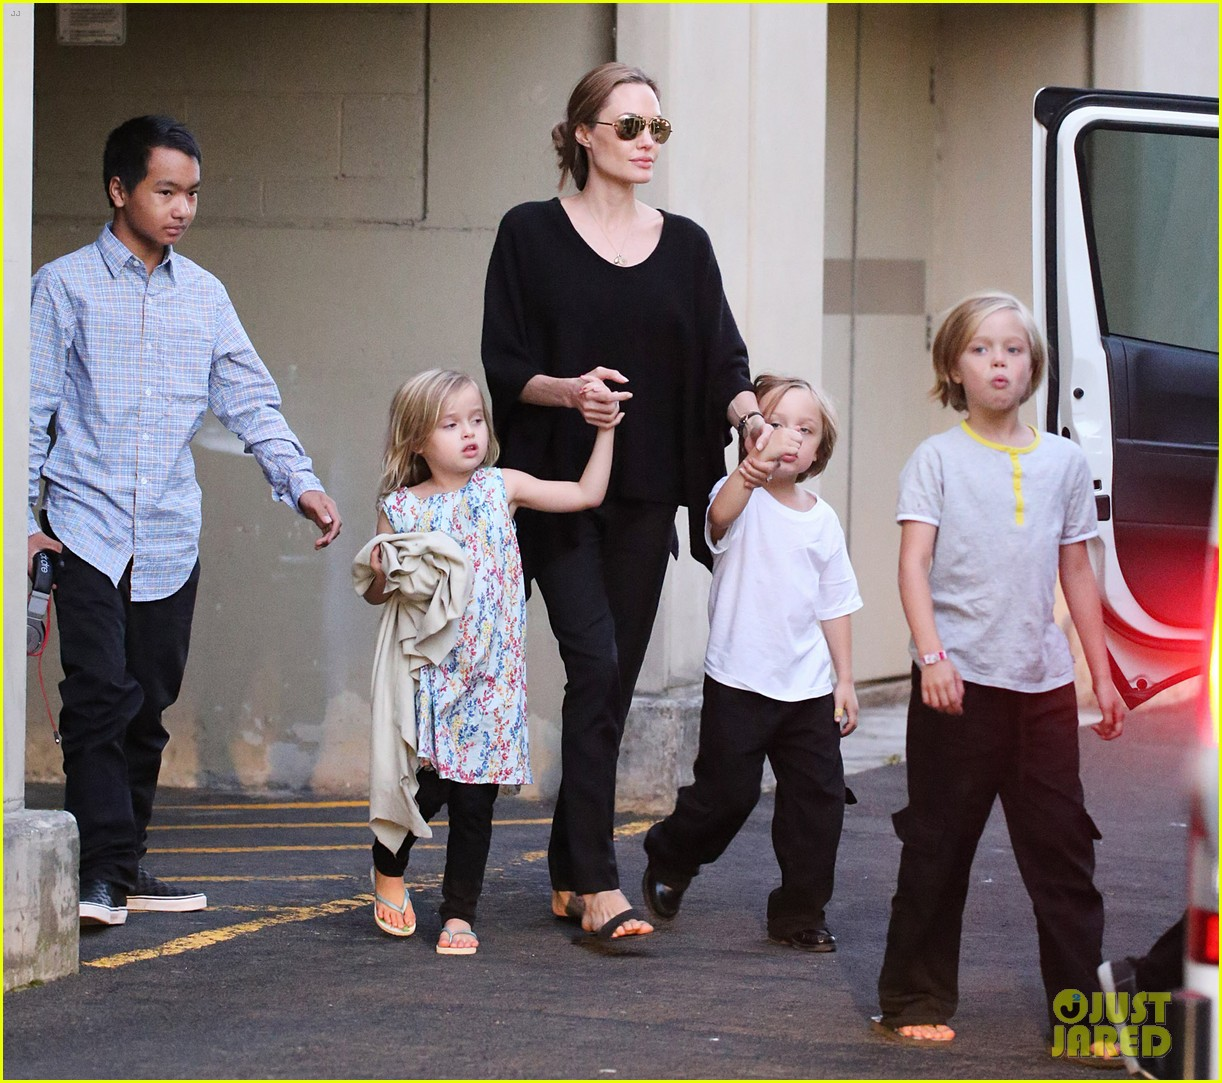 angelina jolie goes bowling in australia with all six kids 072949246